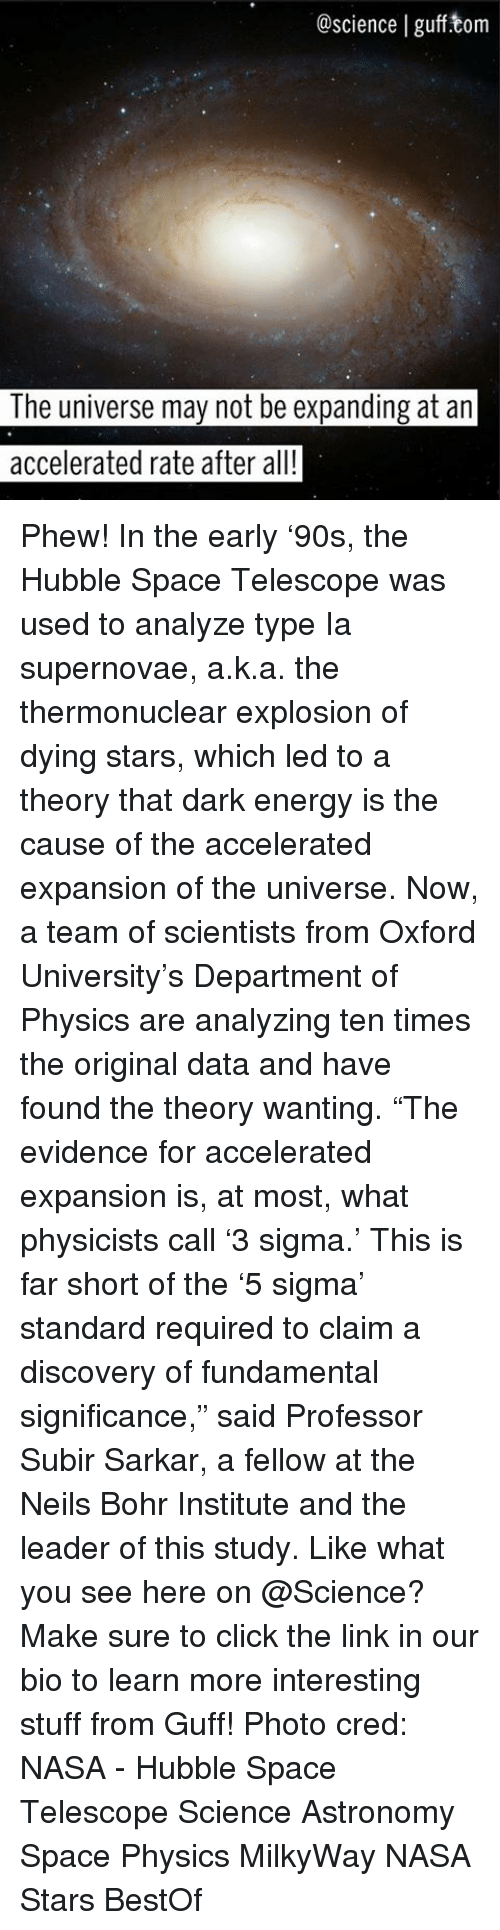 "Energy, Memes, and Nasa: @science I gufftom  The universe may not be expanding at an  accelerated rate after all! Phew! In the early '90s, the Hubble Space Telescope was used to analyze type Ia supernovae, a.k.a. the thermonuclear explosion of dying stars, which led to a theory that dark energy is the cause of the accelerated expansion of the universe. Now, a team of scientists from Oxford University's Department of Physics are analyzing ten times the original data and have found the theory wanting. ""The evidence for accelerated expansion is, at most, what physicists call '3 sigma.' This is far short of the '5 sigma' standard required to claim a discovery of fundamental significance,"" said Professor Subir Sarkar, a fellow at the Neils Bohr Institute and the leader of this study. Like what you see here on @Science? Make sure to click the link in our bio to learn more interesting stuff from Guff! Photo cred: NASA - Hubble Space Telescope Science Astronomy Space Physics MilkyWay NASA Stars BestOf"